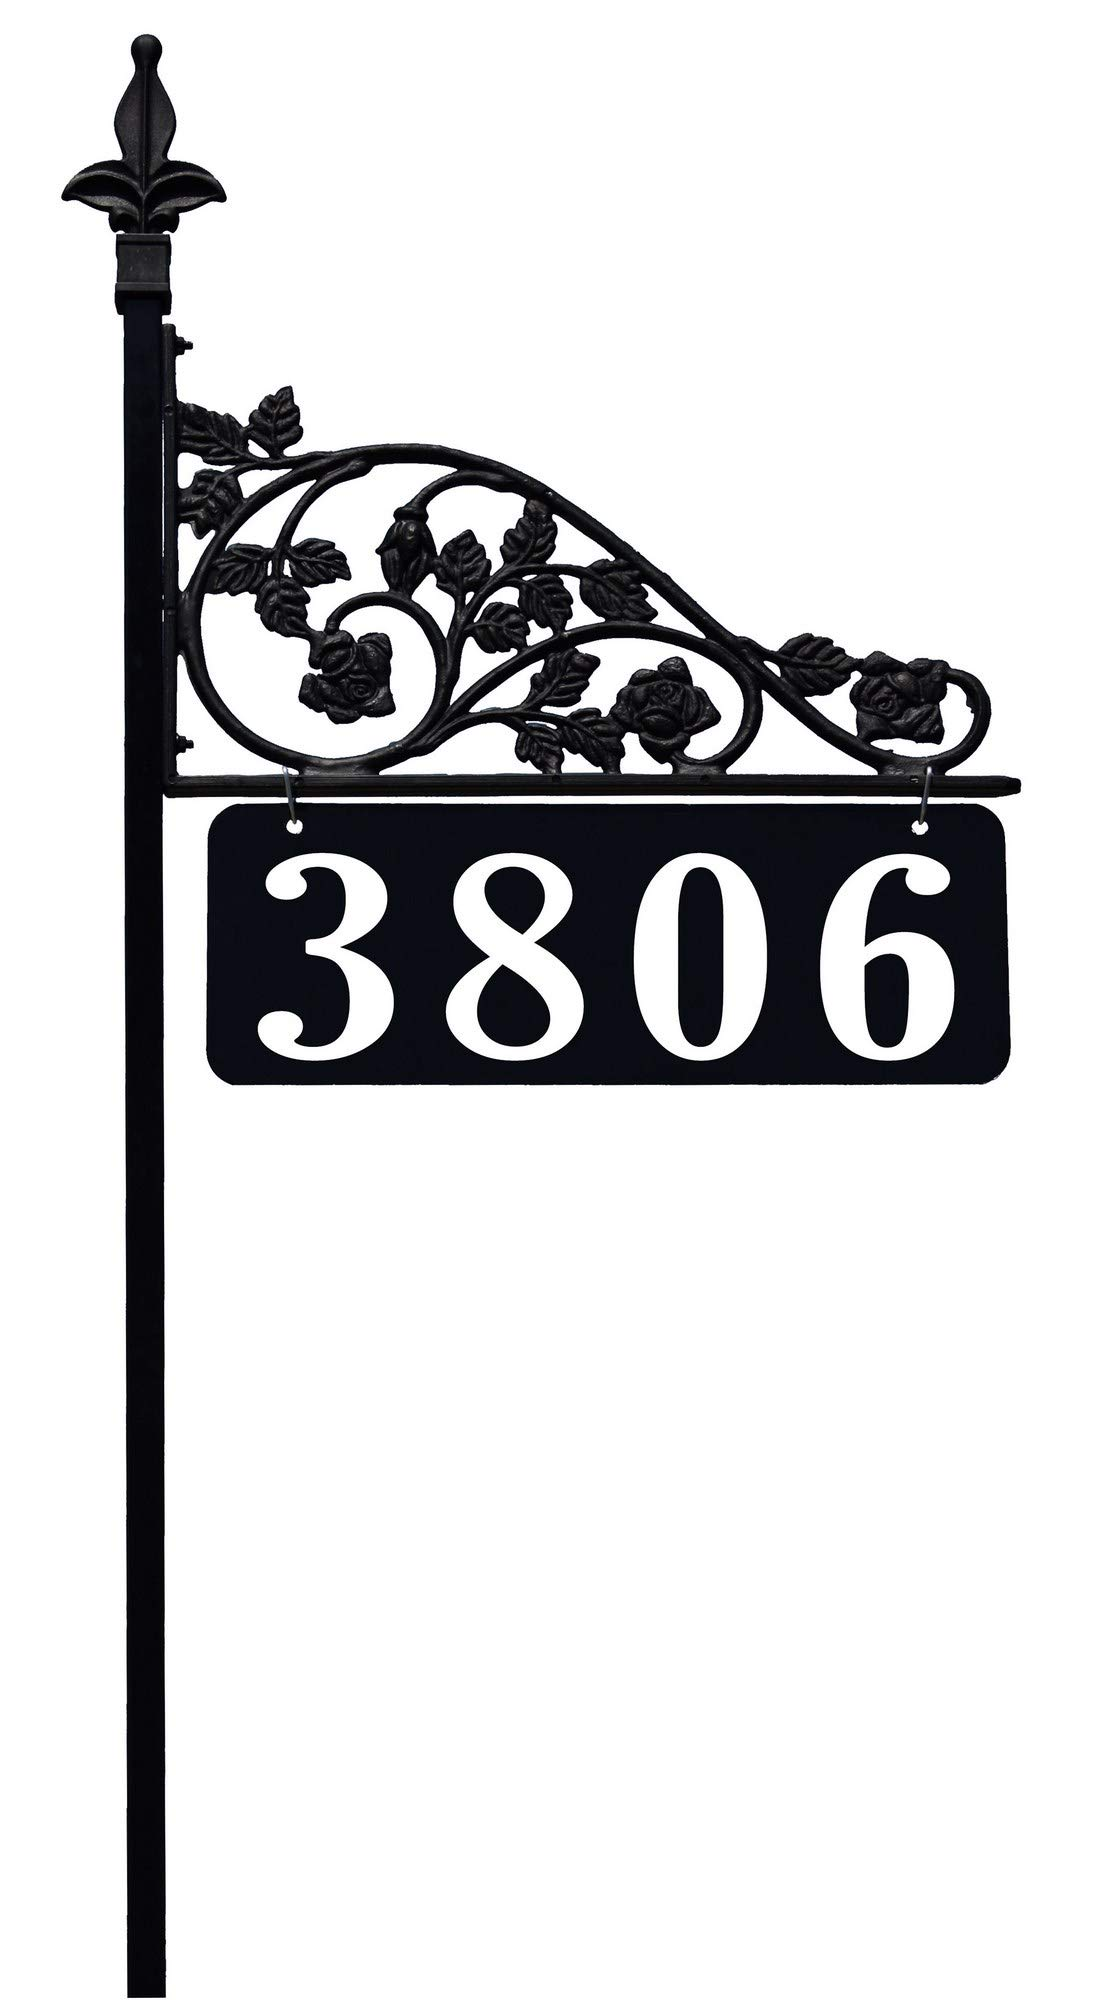 Rose Reflective Double Sided Address Sign with 47'' Pole. Easily Seen Day and Night. No Batteries, Electricity Or Solar Cells Required